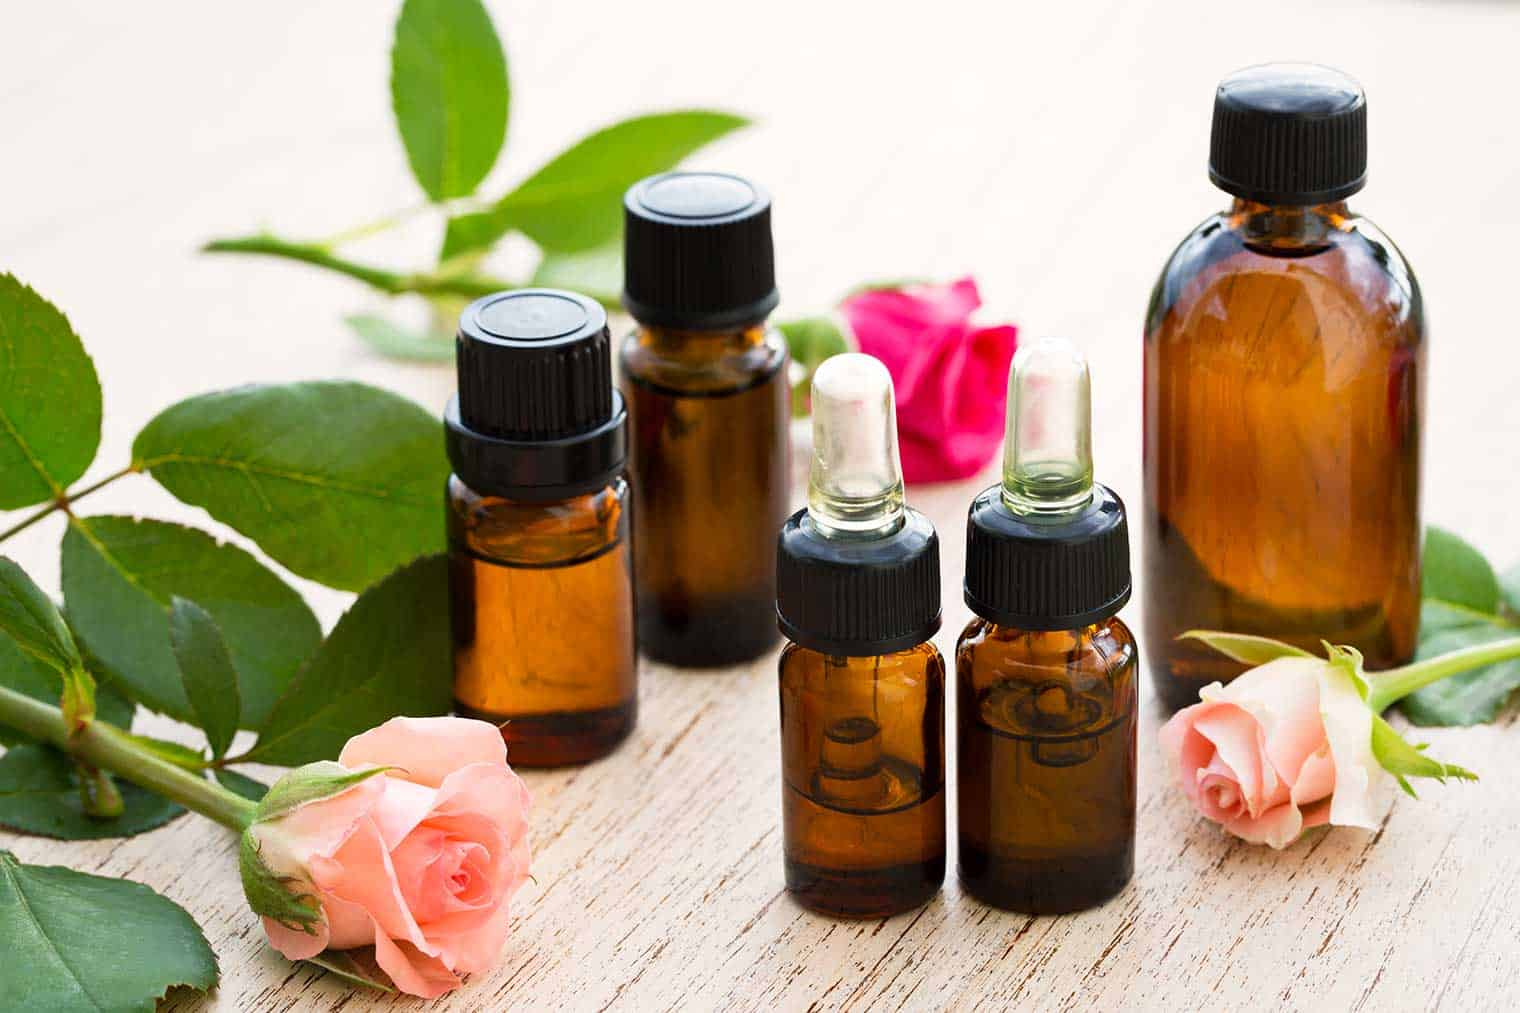 What You Don't Find Out About Canadian Essential Oils